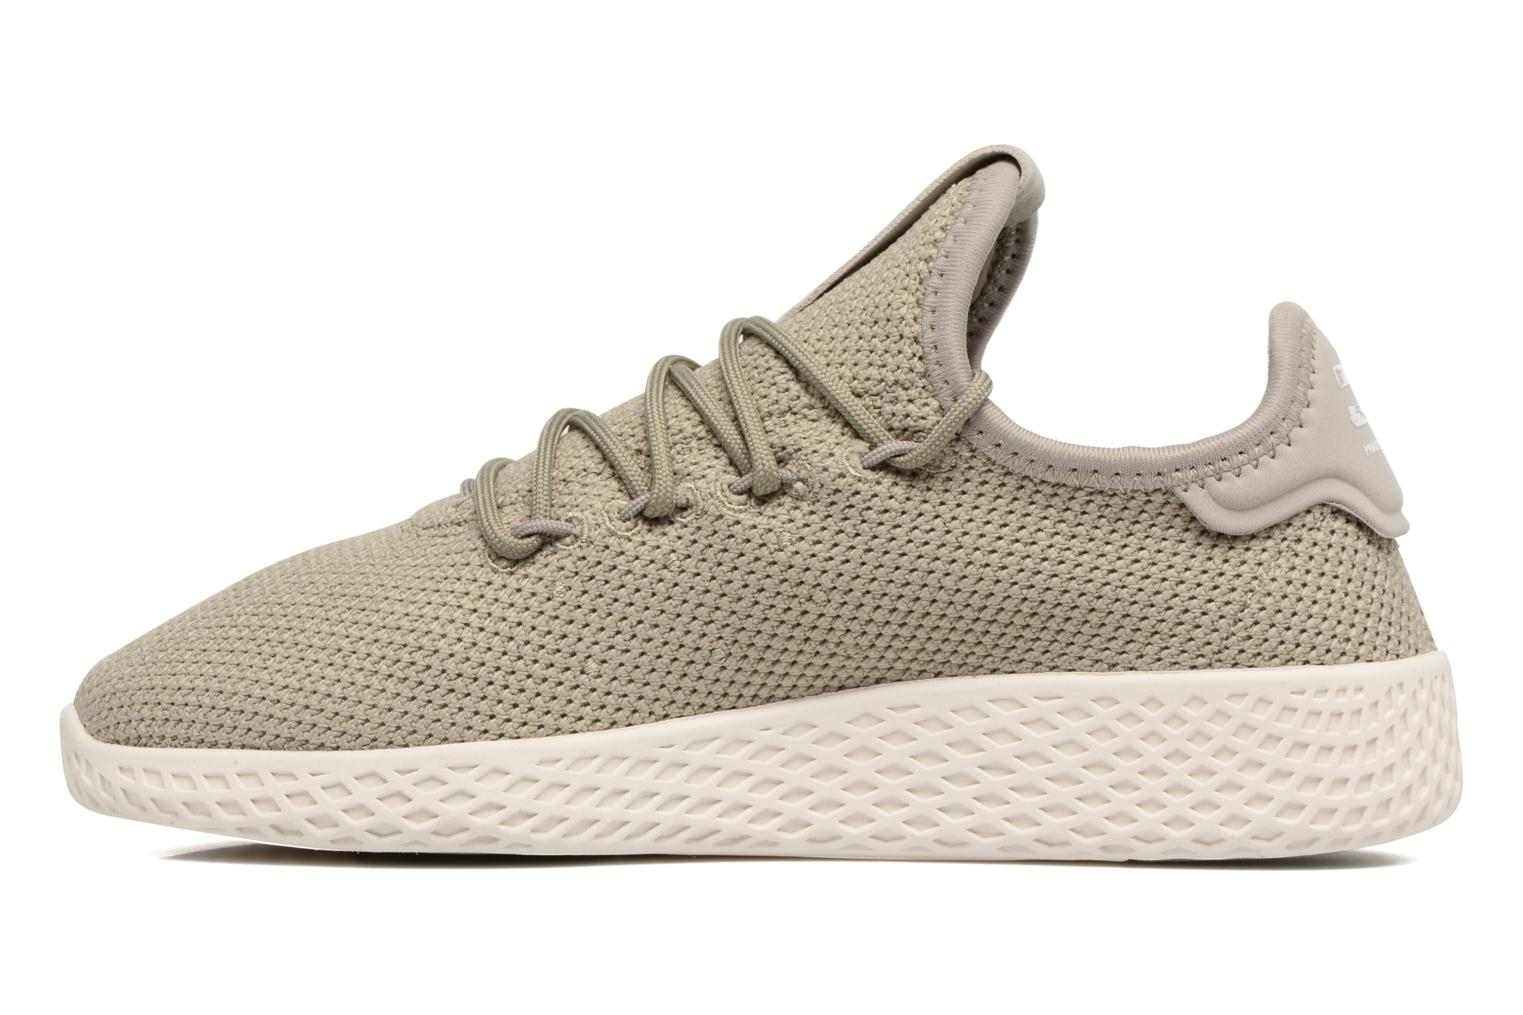 Ecarla/Ftwbla/Ftwbla Adidas Originals Pharrell Williams Tennis Hu C (Rose)